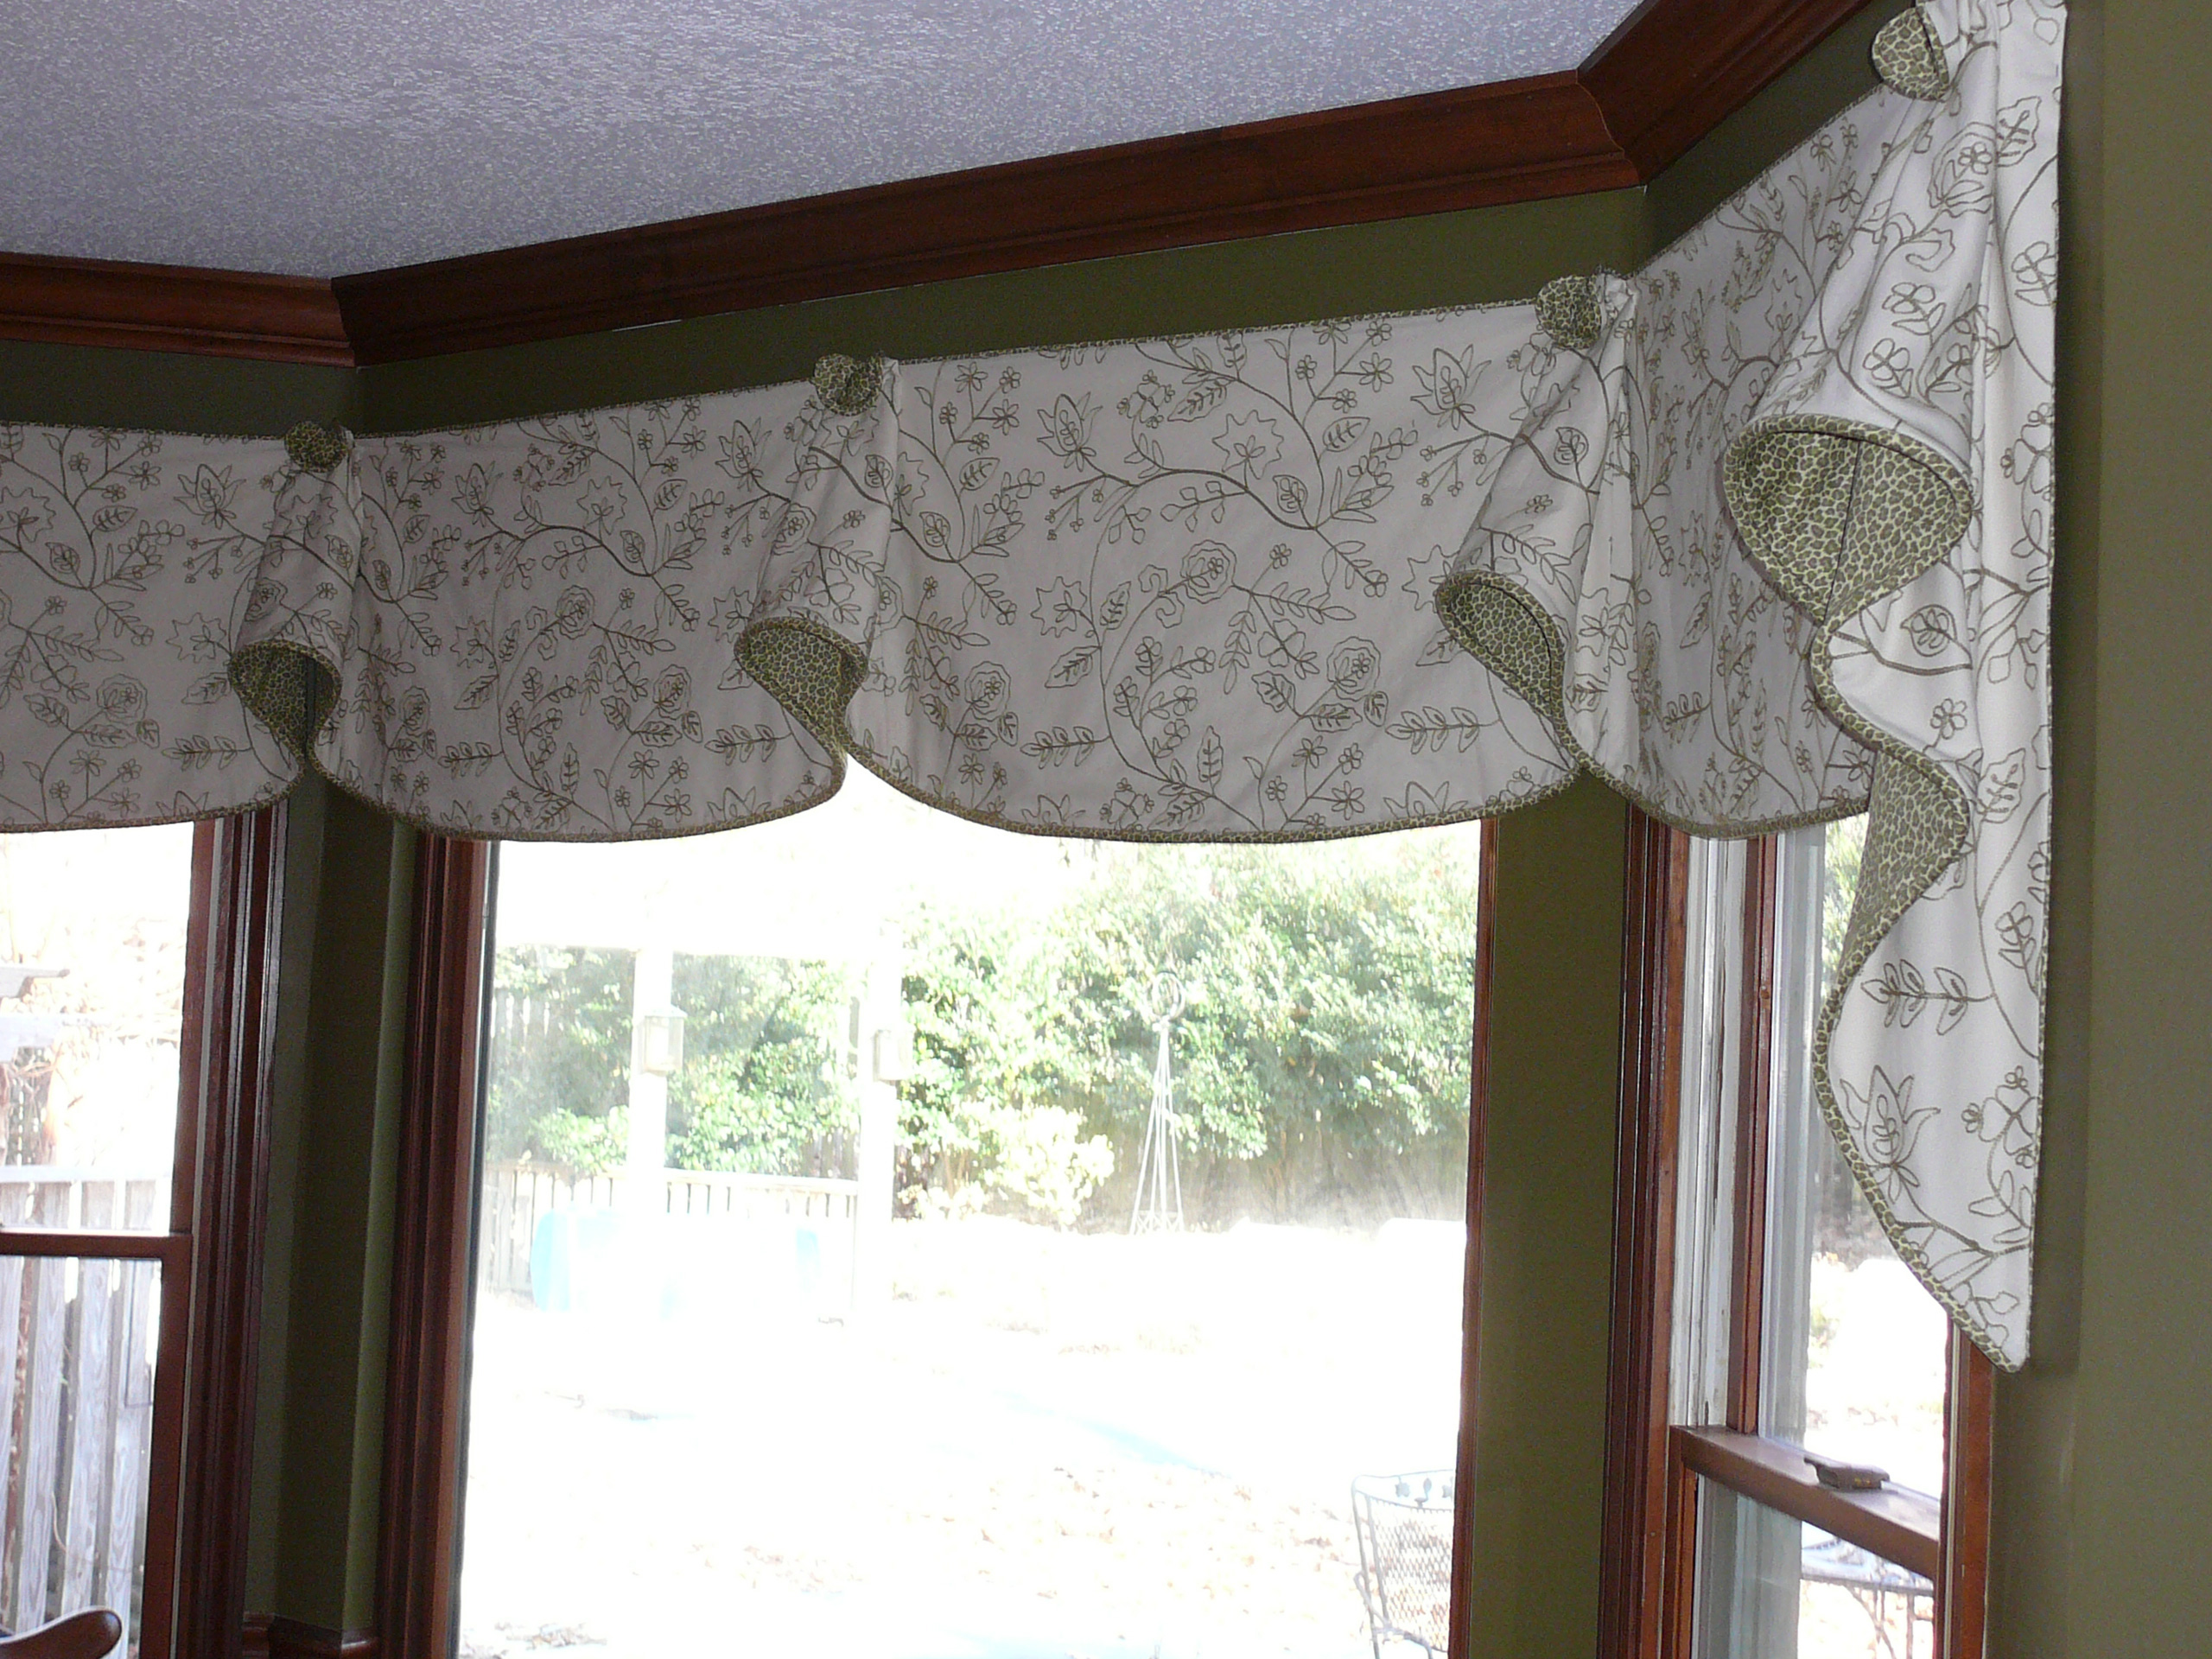 madison over tier garden embellished product laverne park shipping home faux scallop valances solid lined silk orders on valance free overstock